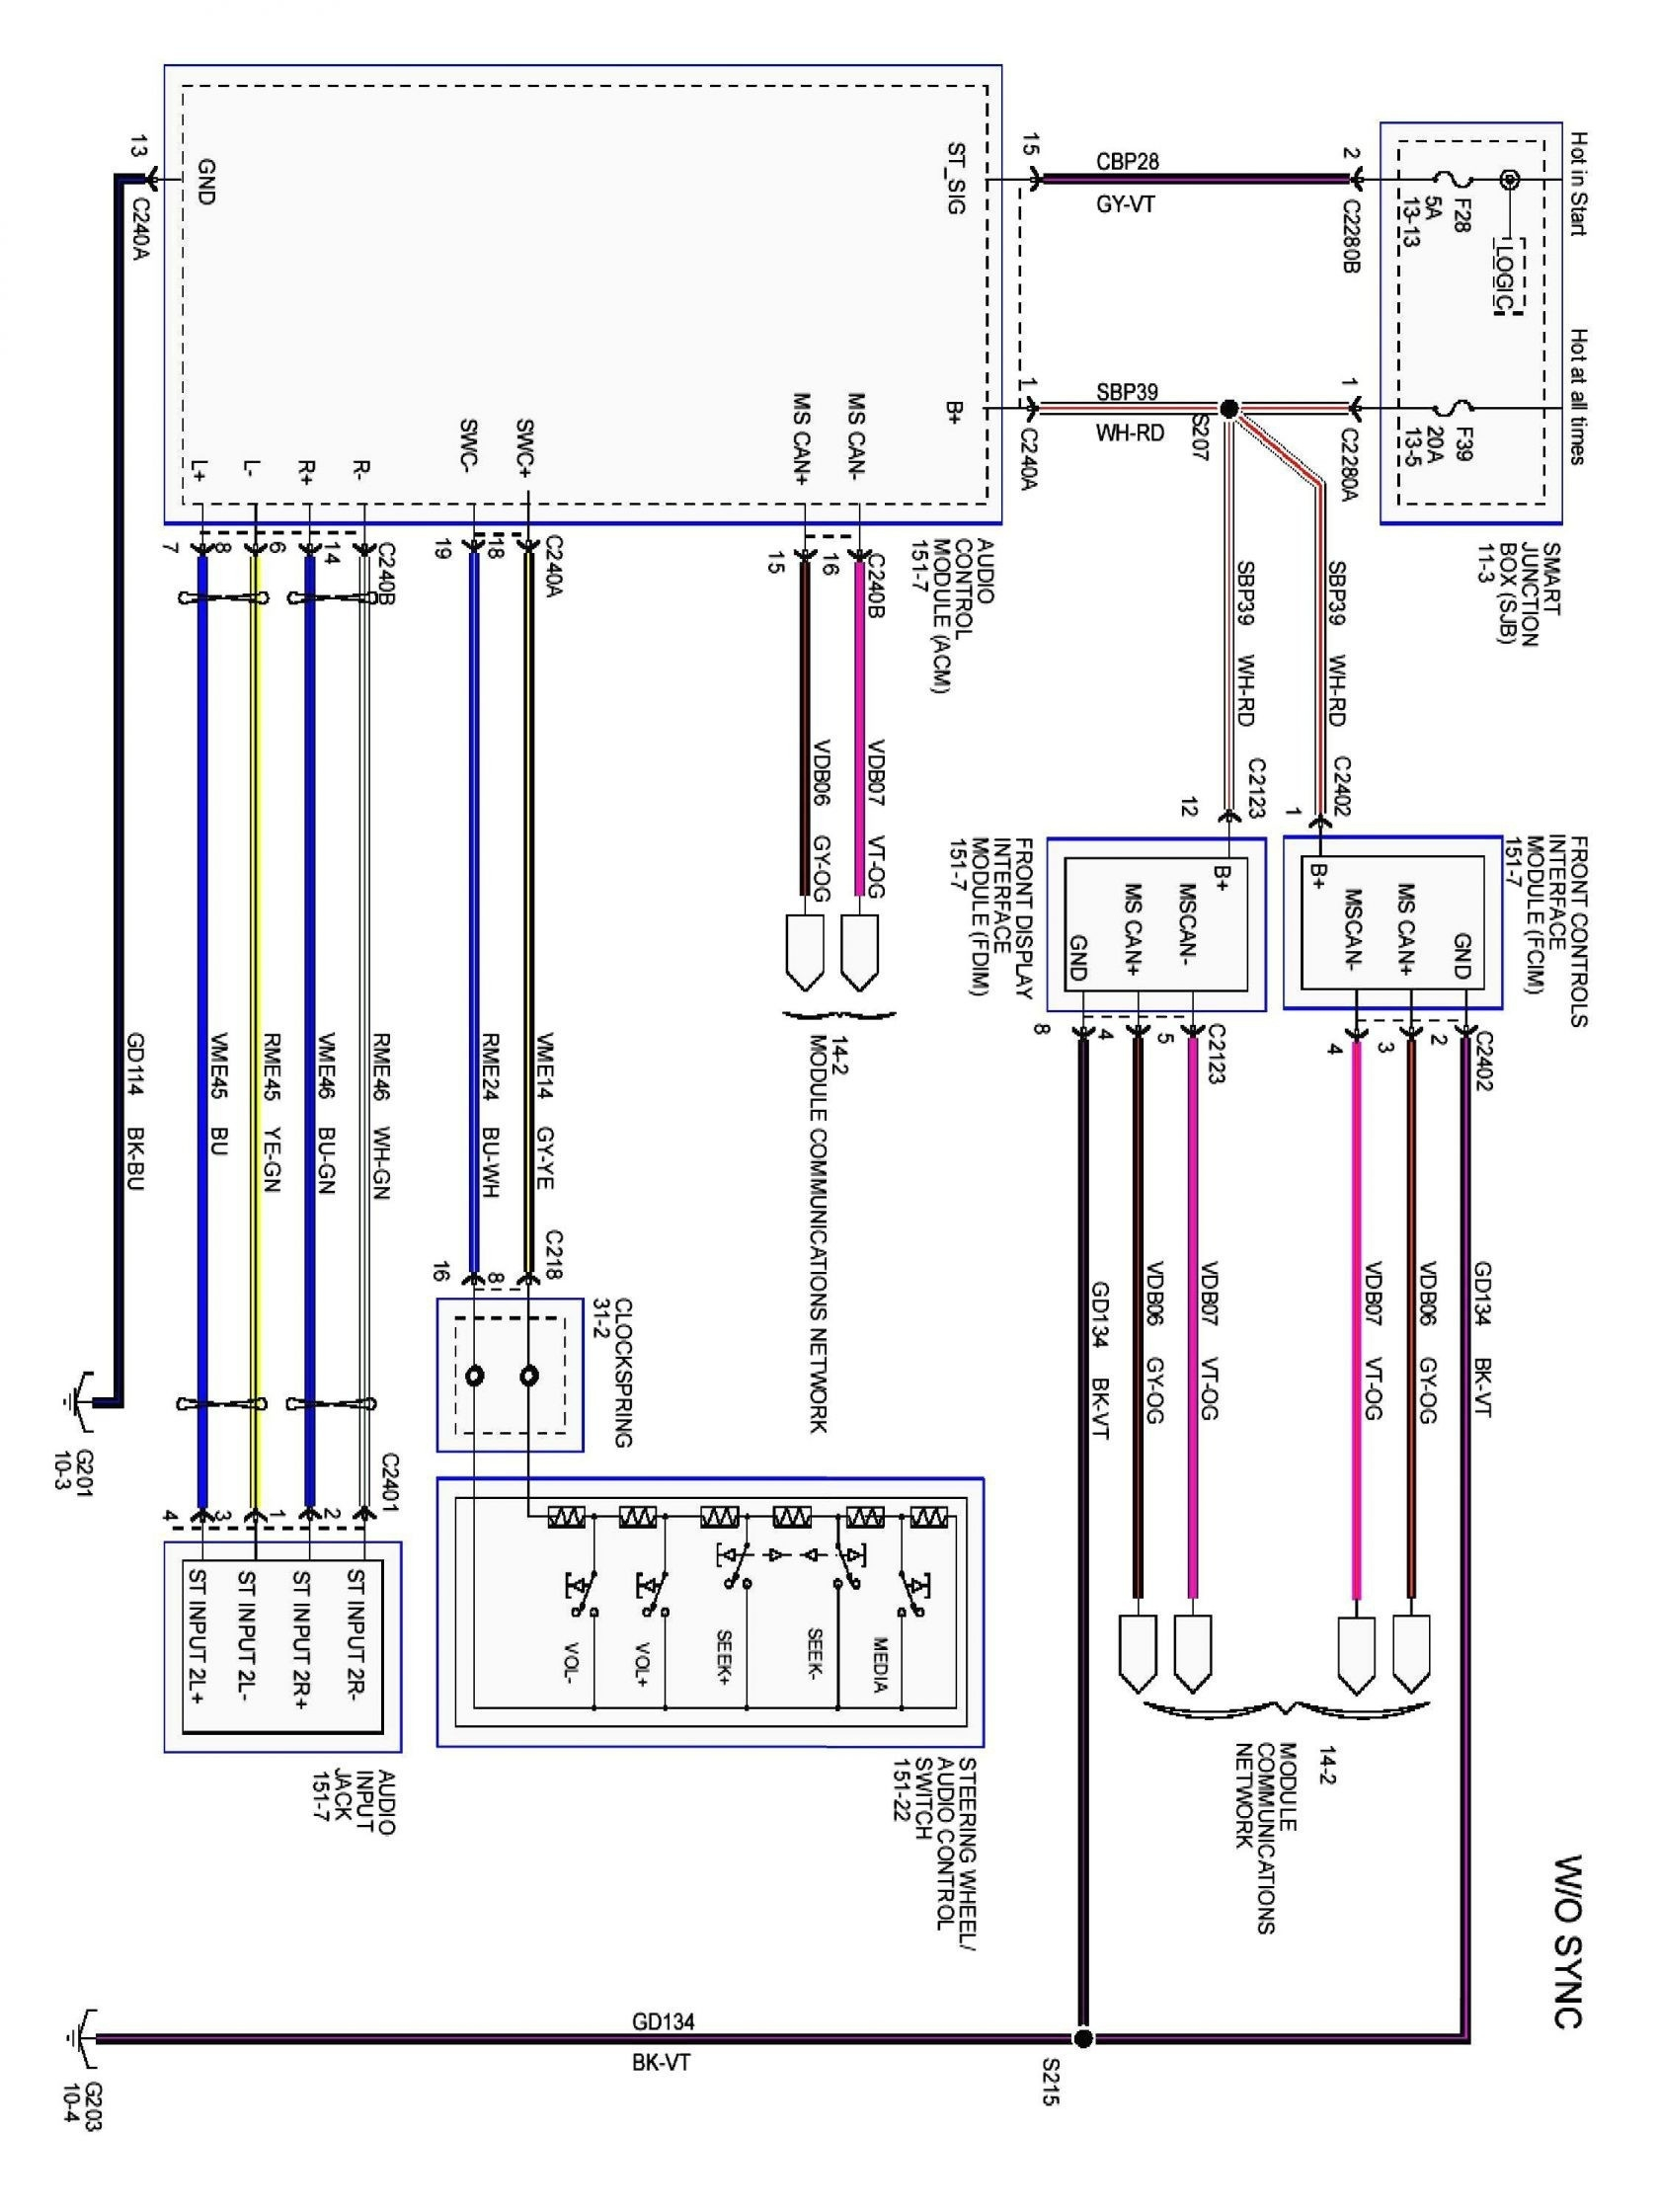 amp research power step wiring diagram Download-Amp Research Power Step Wiring Diagram Valid Wiring Diagram For Rv Steps New Amp Power Step Wiring Diagram Gidn 4-s